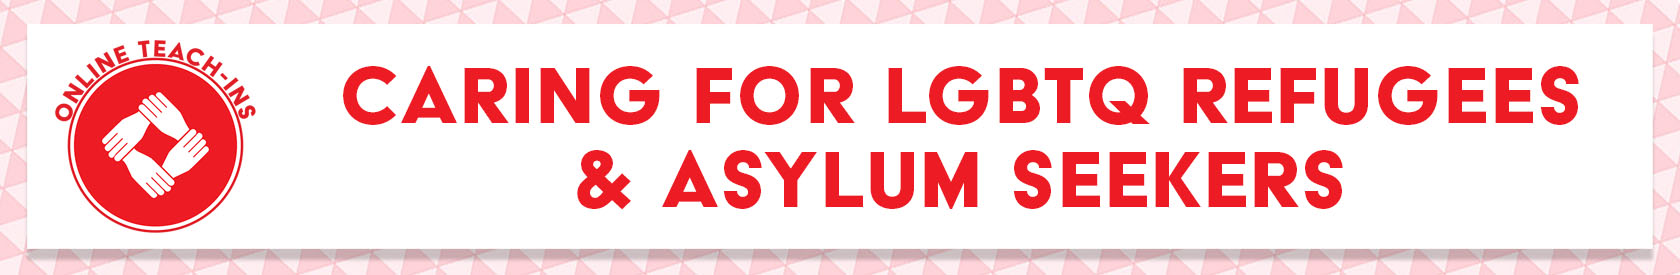 Caring for LGBTQ Refugees and Asylum Seekers